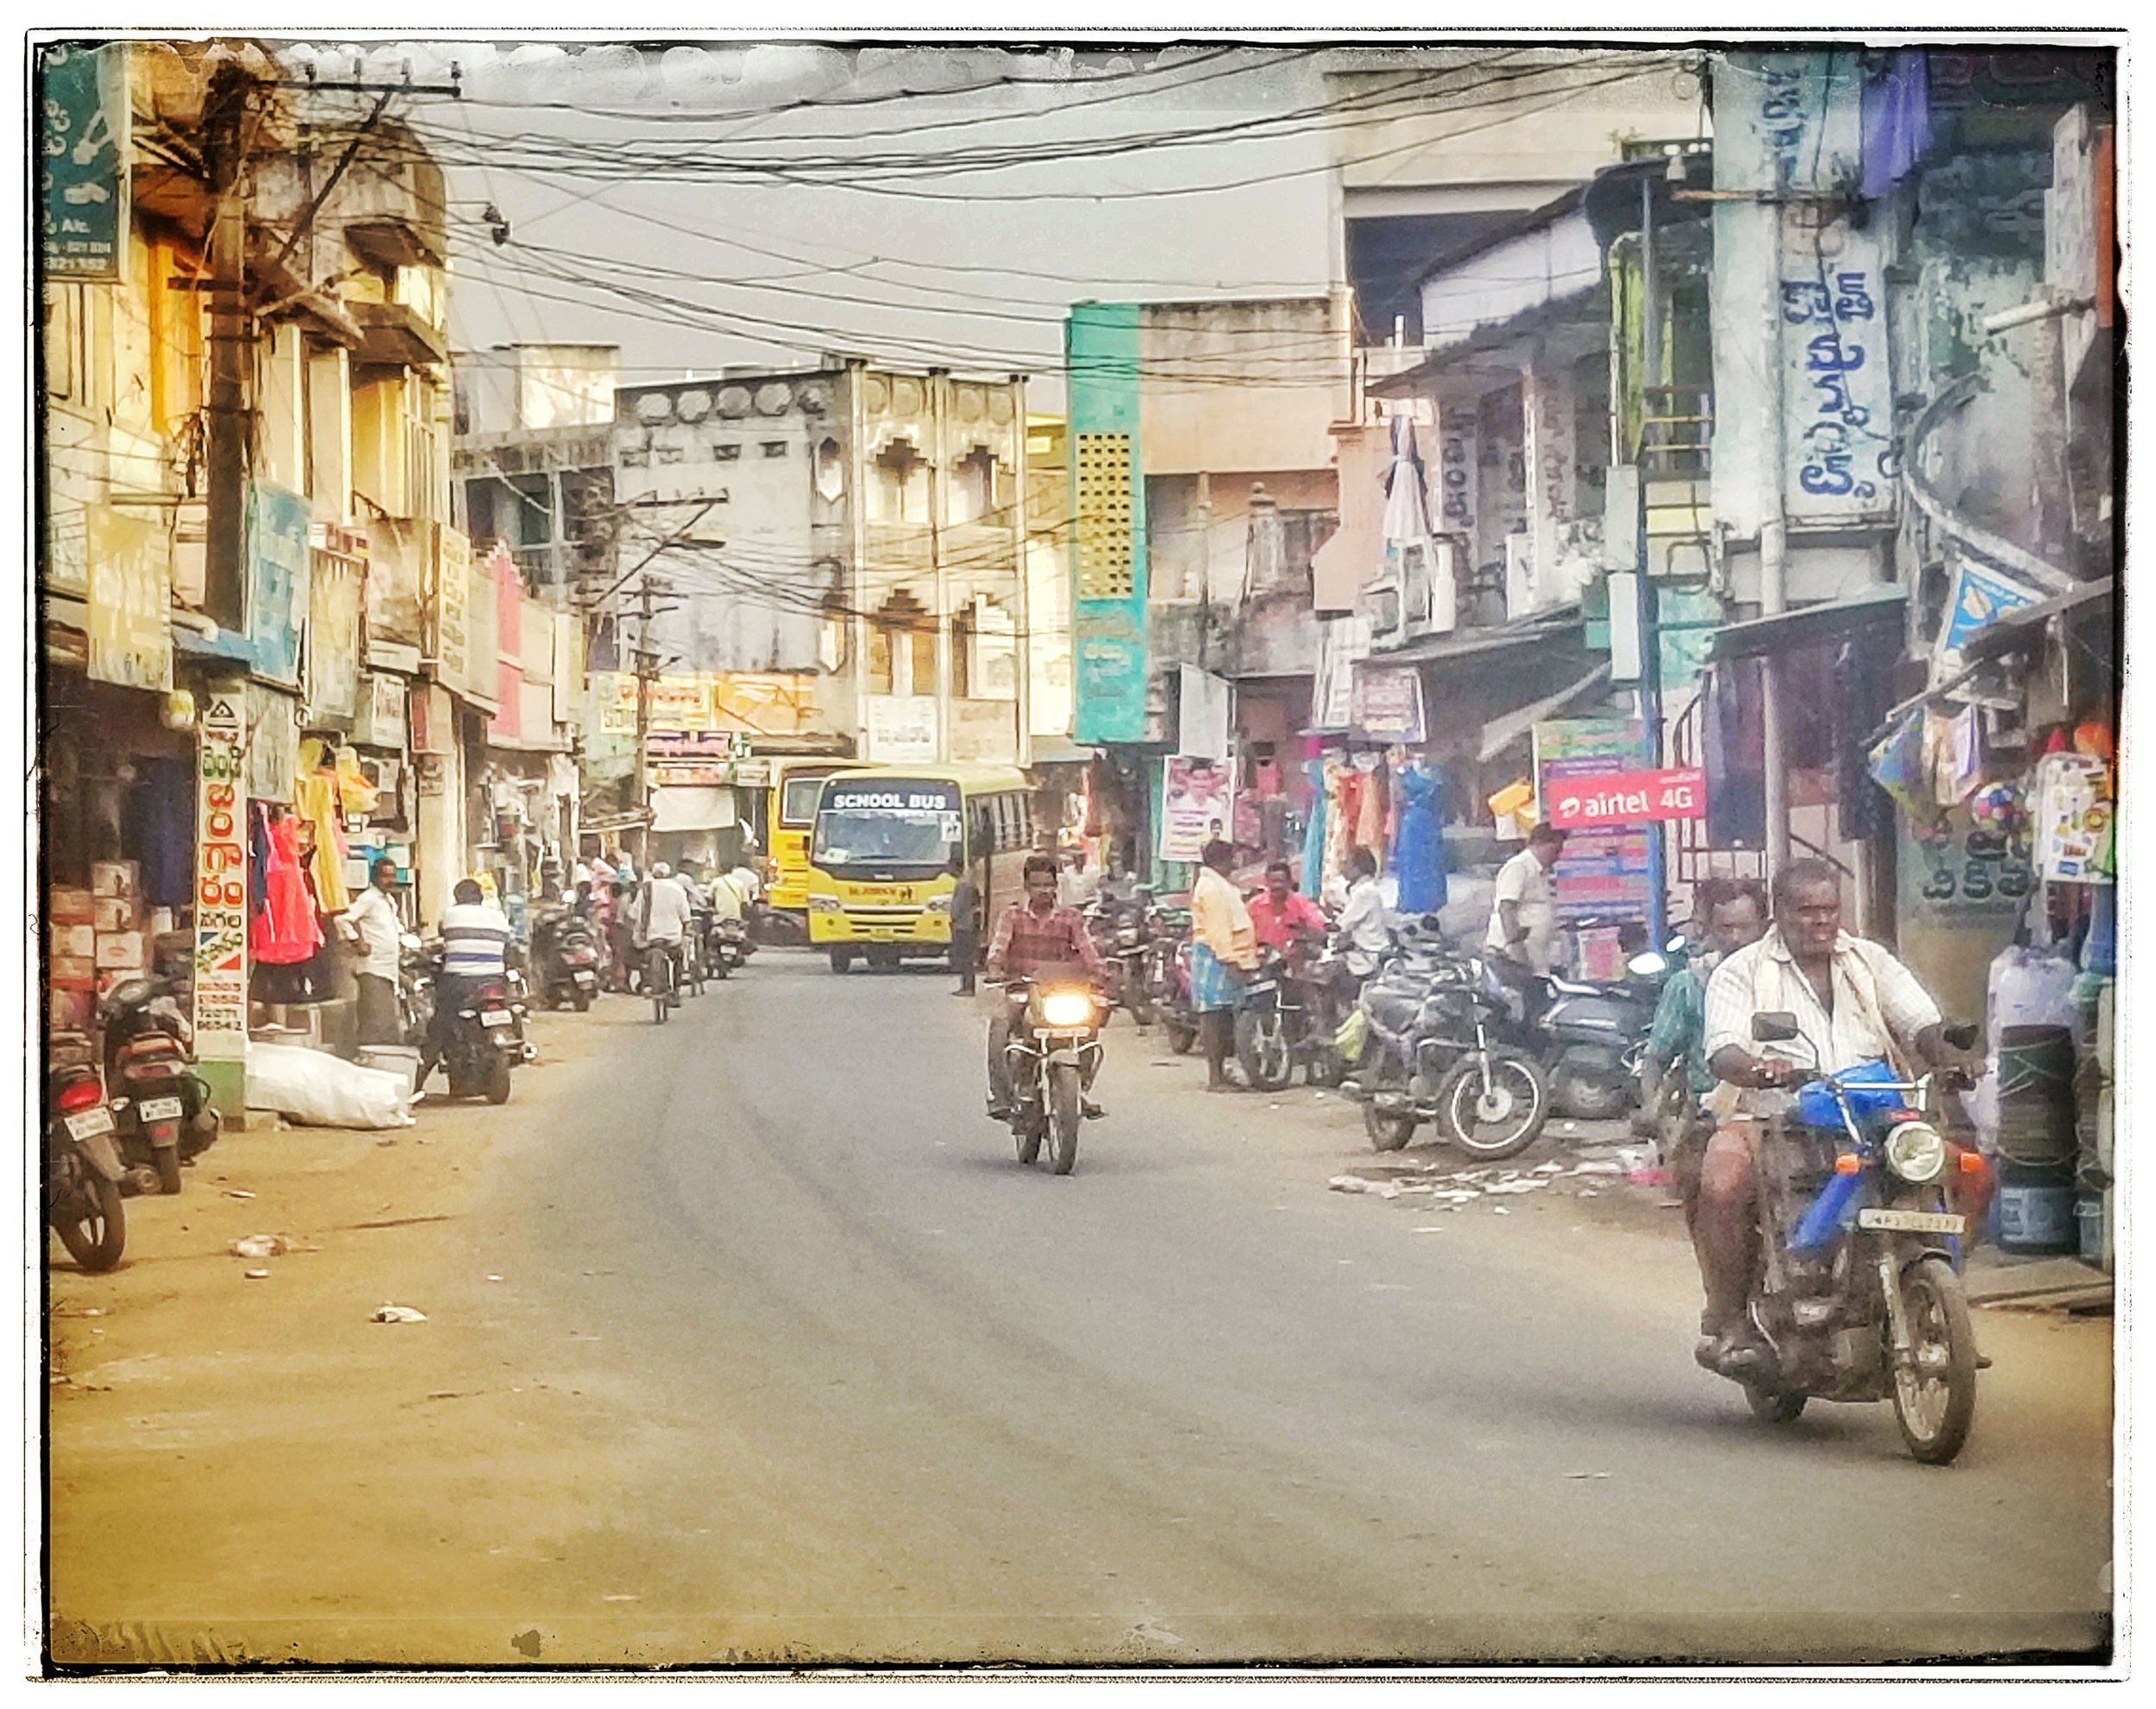 Typical street scene in southern India. I was often gawked at as many had never seen a white person. Even gave out my autograph!